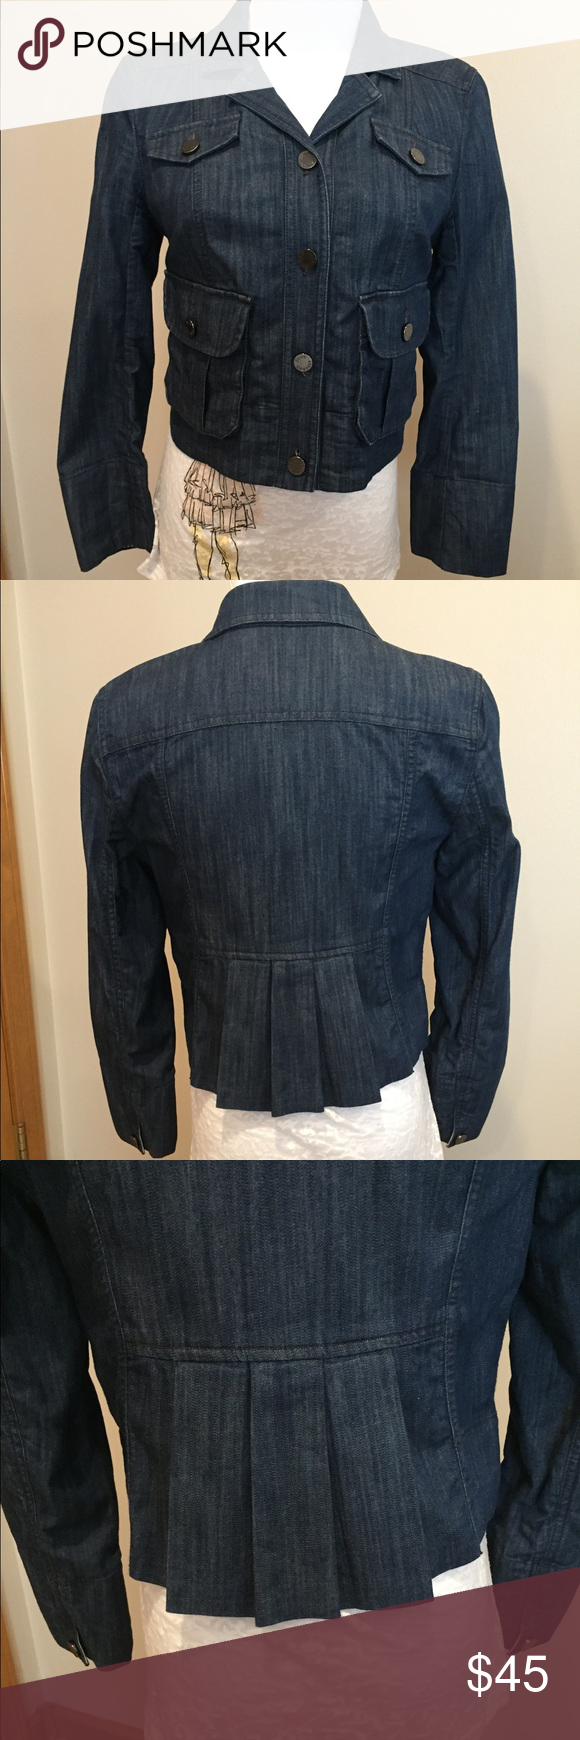 a193e6aae102 Juicy Couture Refined Denim Jeans Jacket